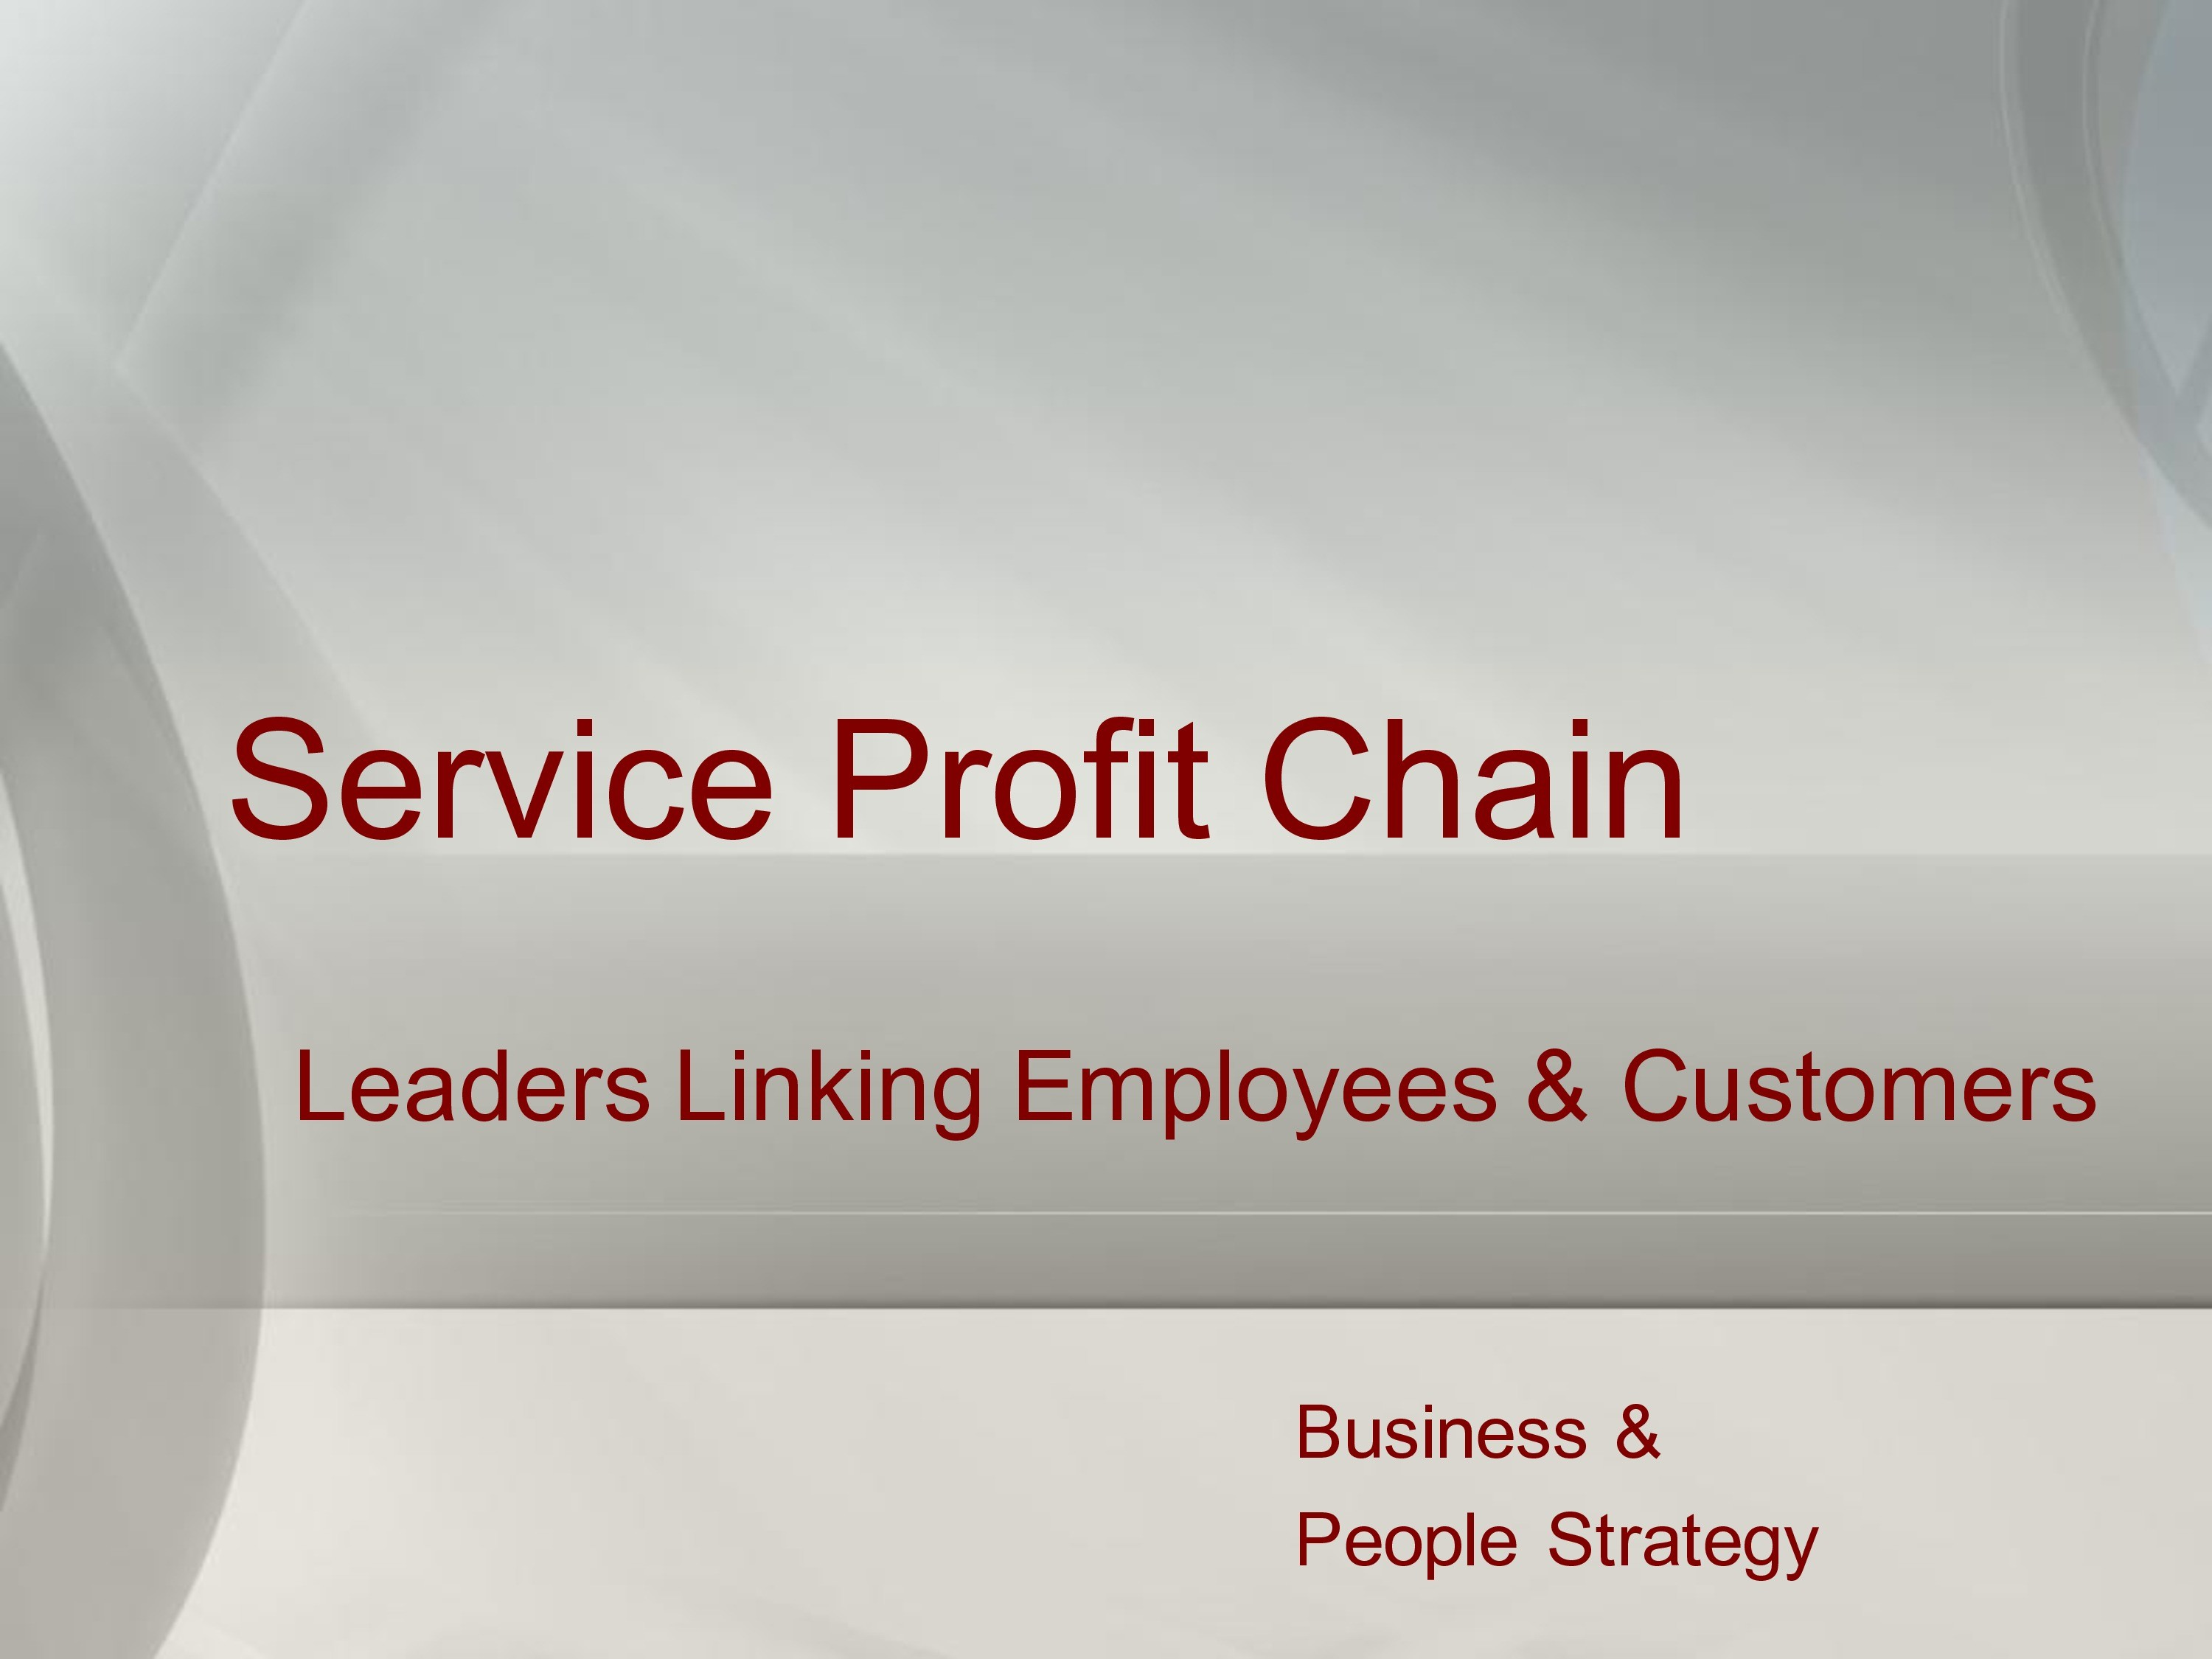 service chain Service chain management enables service organisations to improve customer satisfaction and reduce operational costs through intelligent and optimised forecasting, planning and scheduling of the service chain, and its associated resources such as people, networks and other assets.